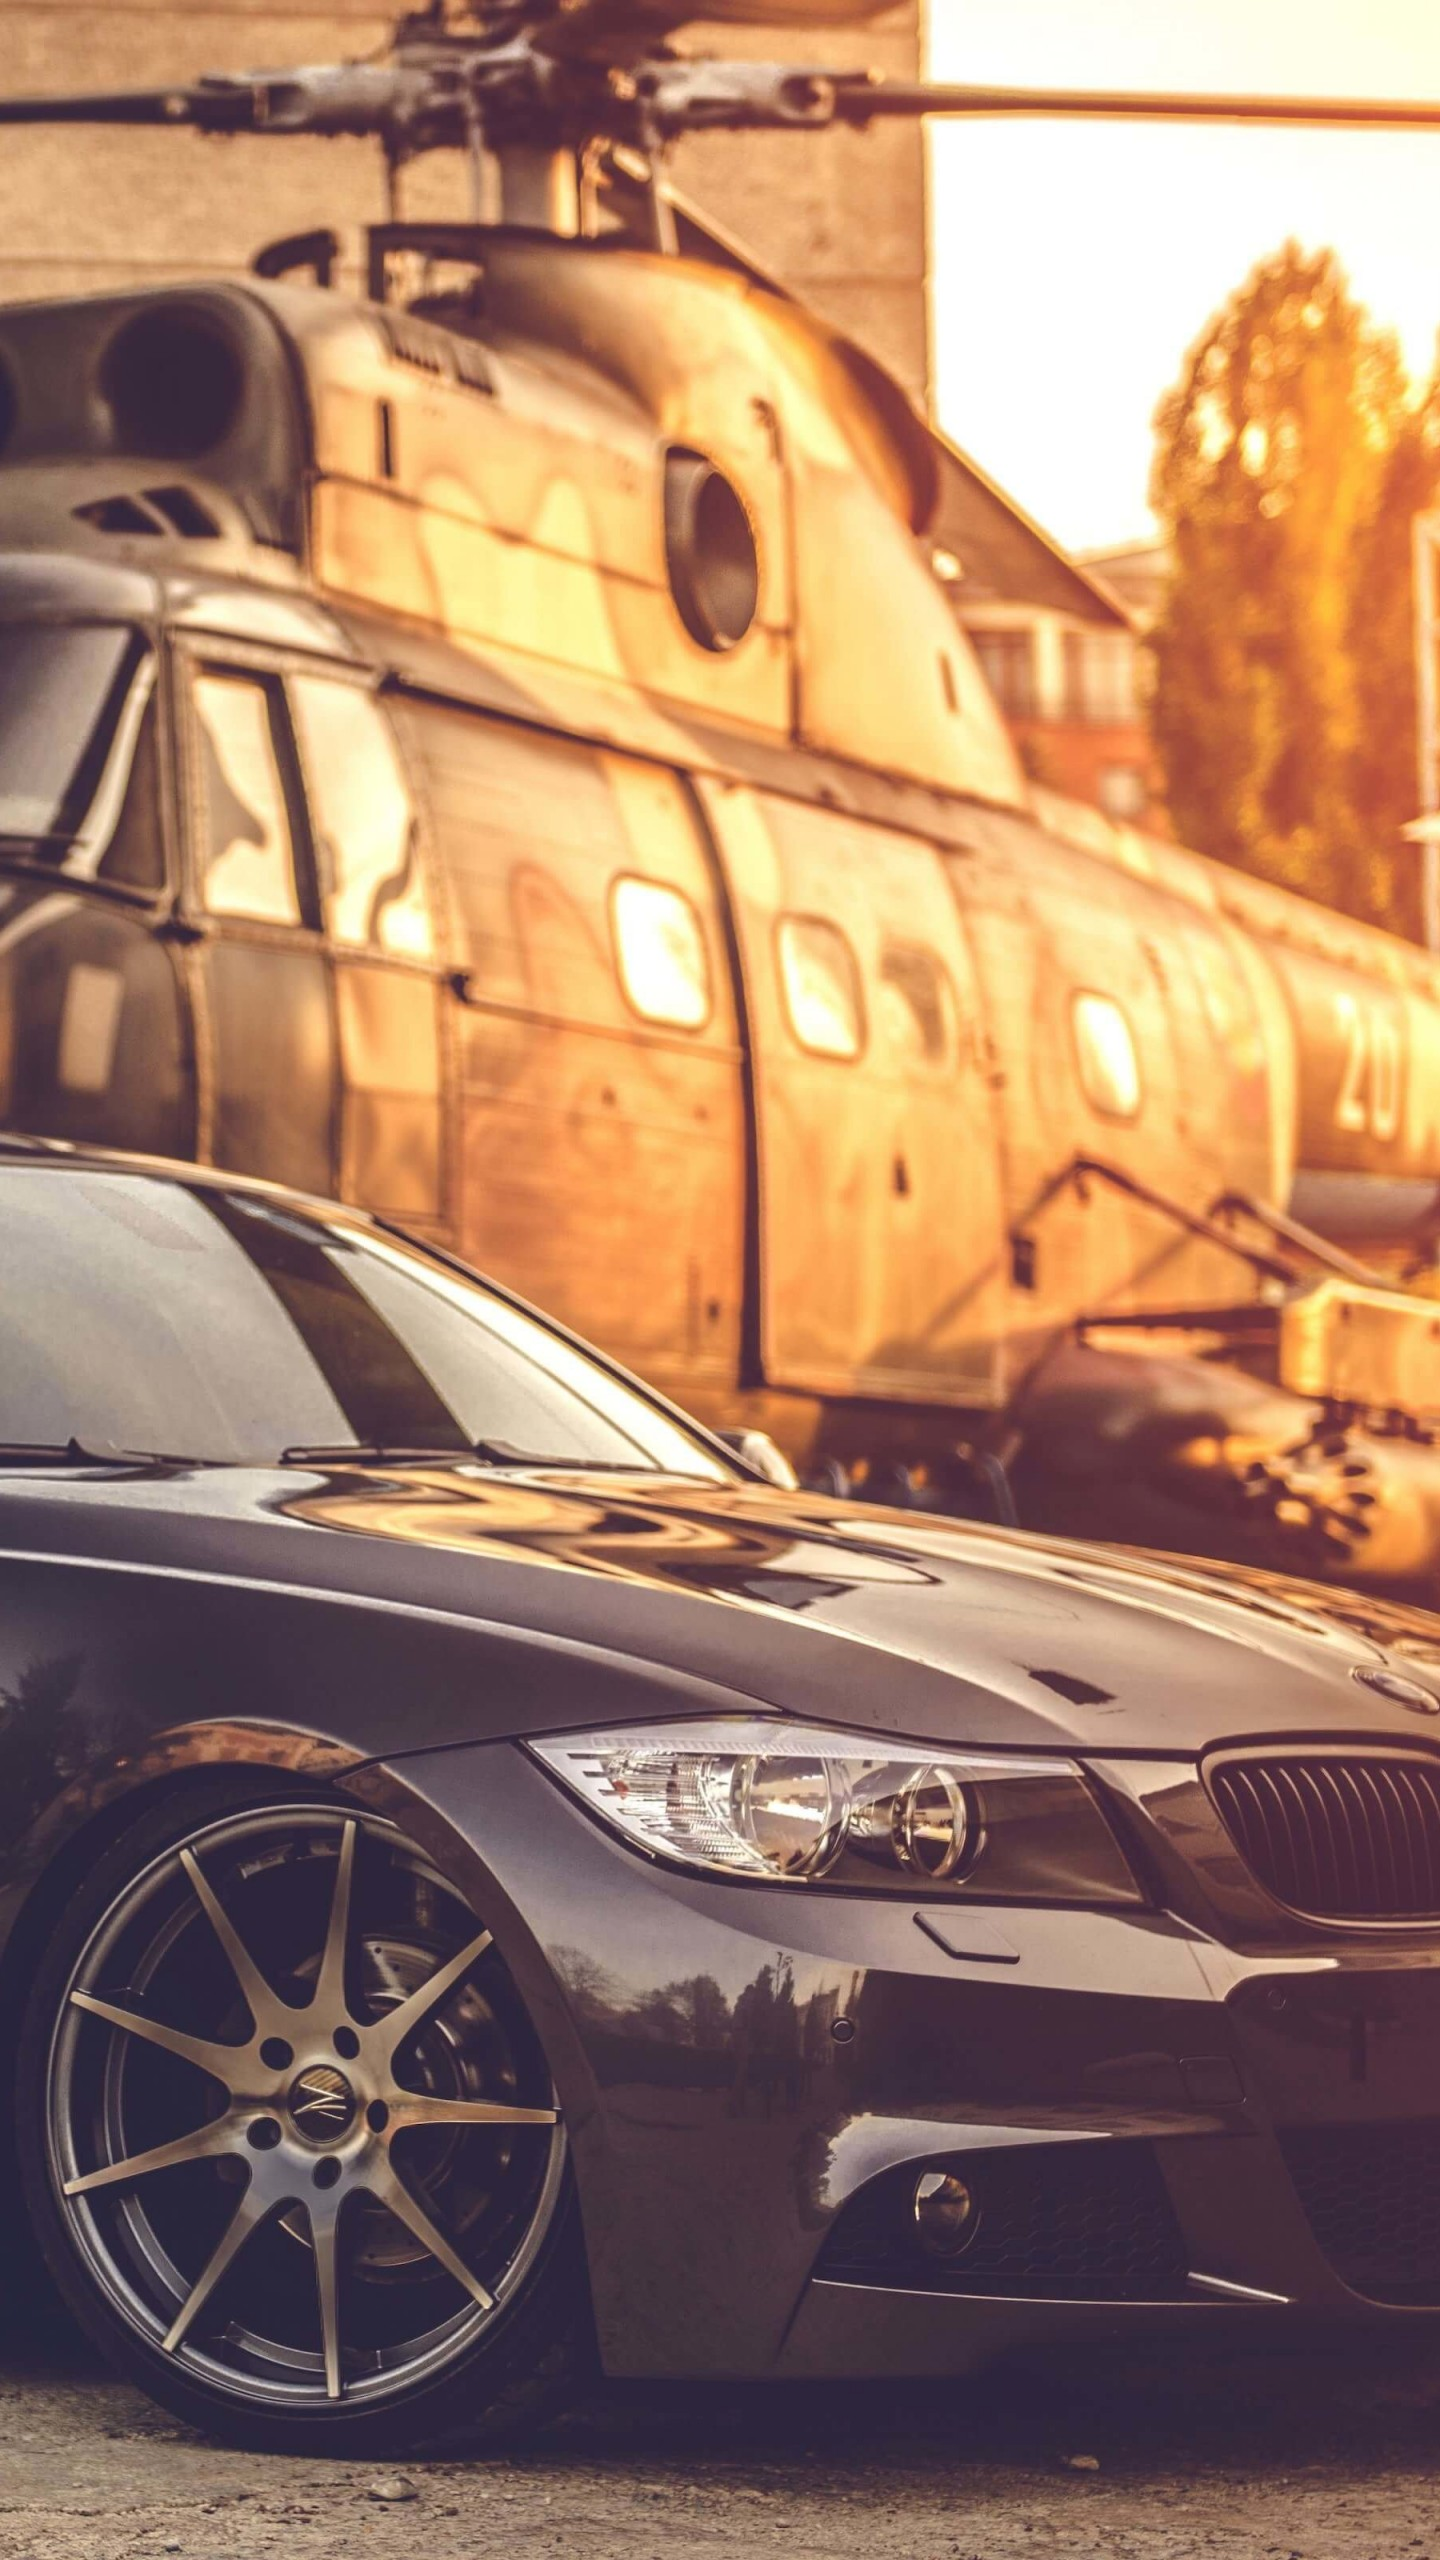 BMW E90 on Z-Performance Wheels Wallpaper for LG G3